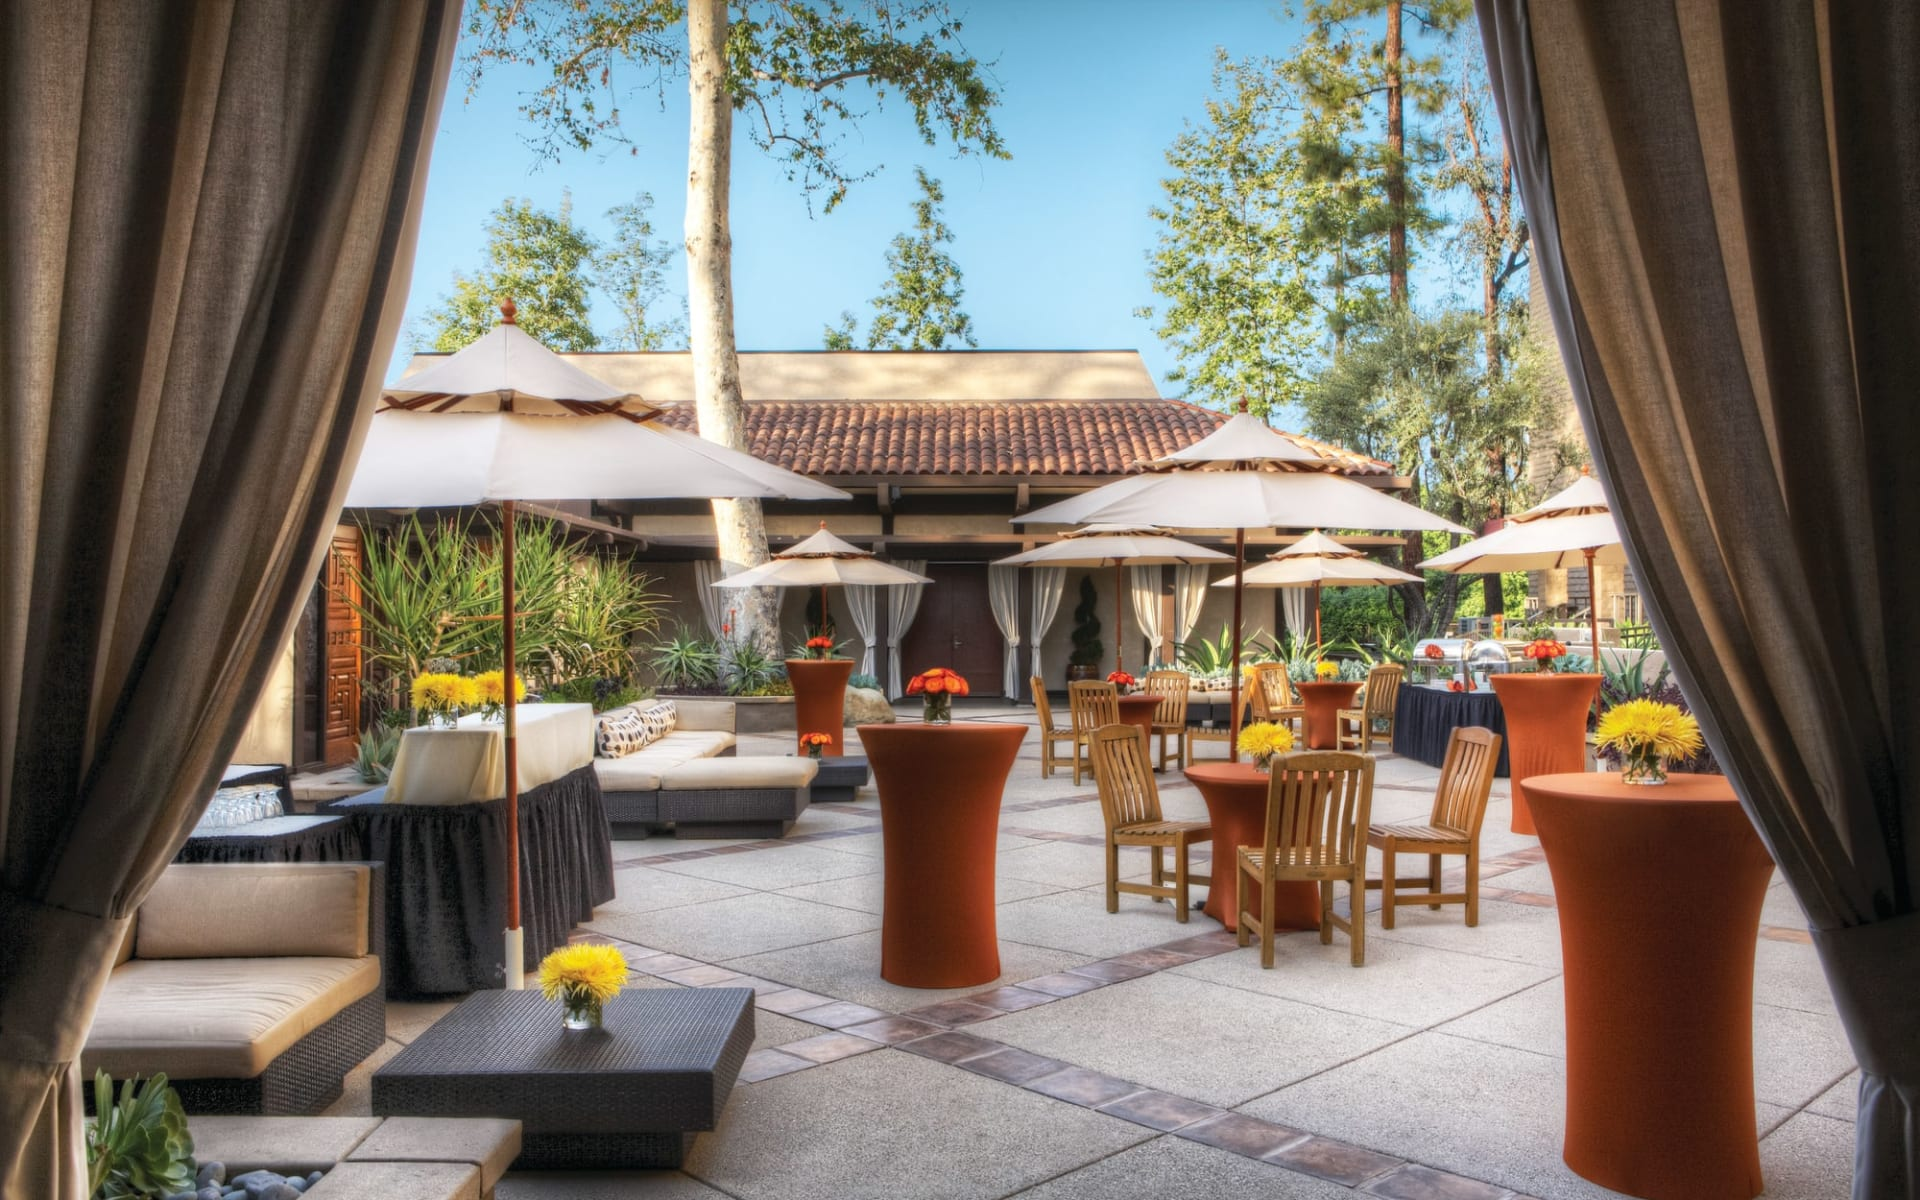 The Garland in Hollywood:  The Garland - Courtyard